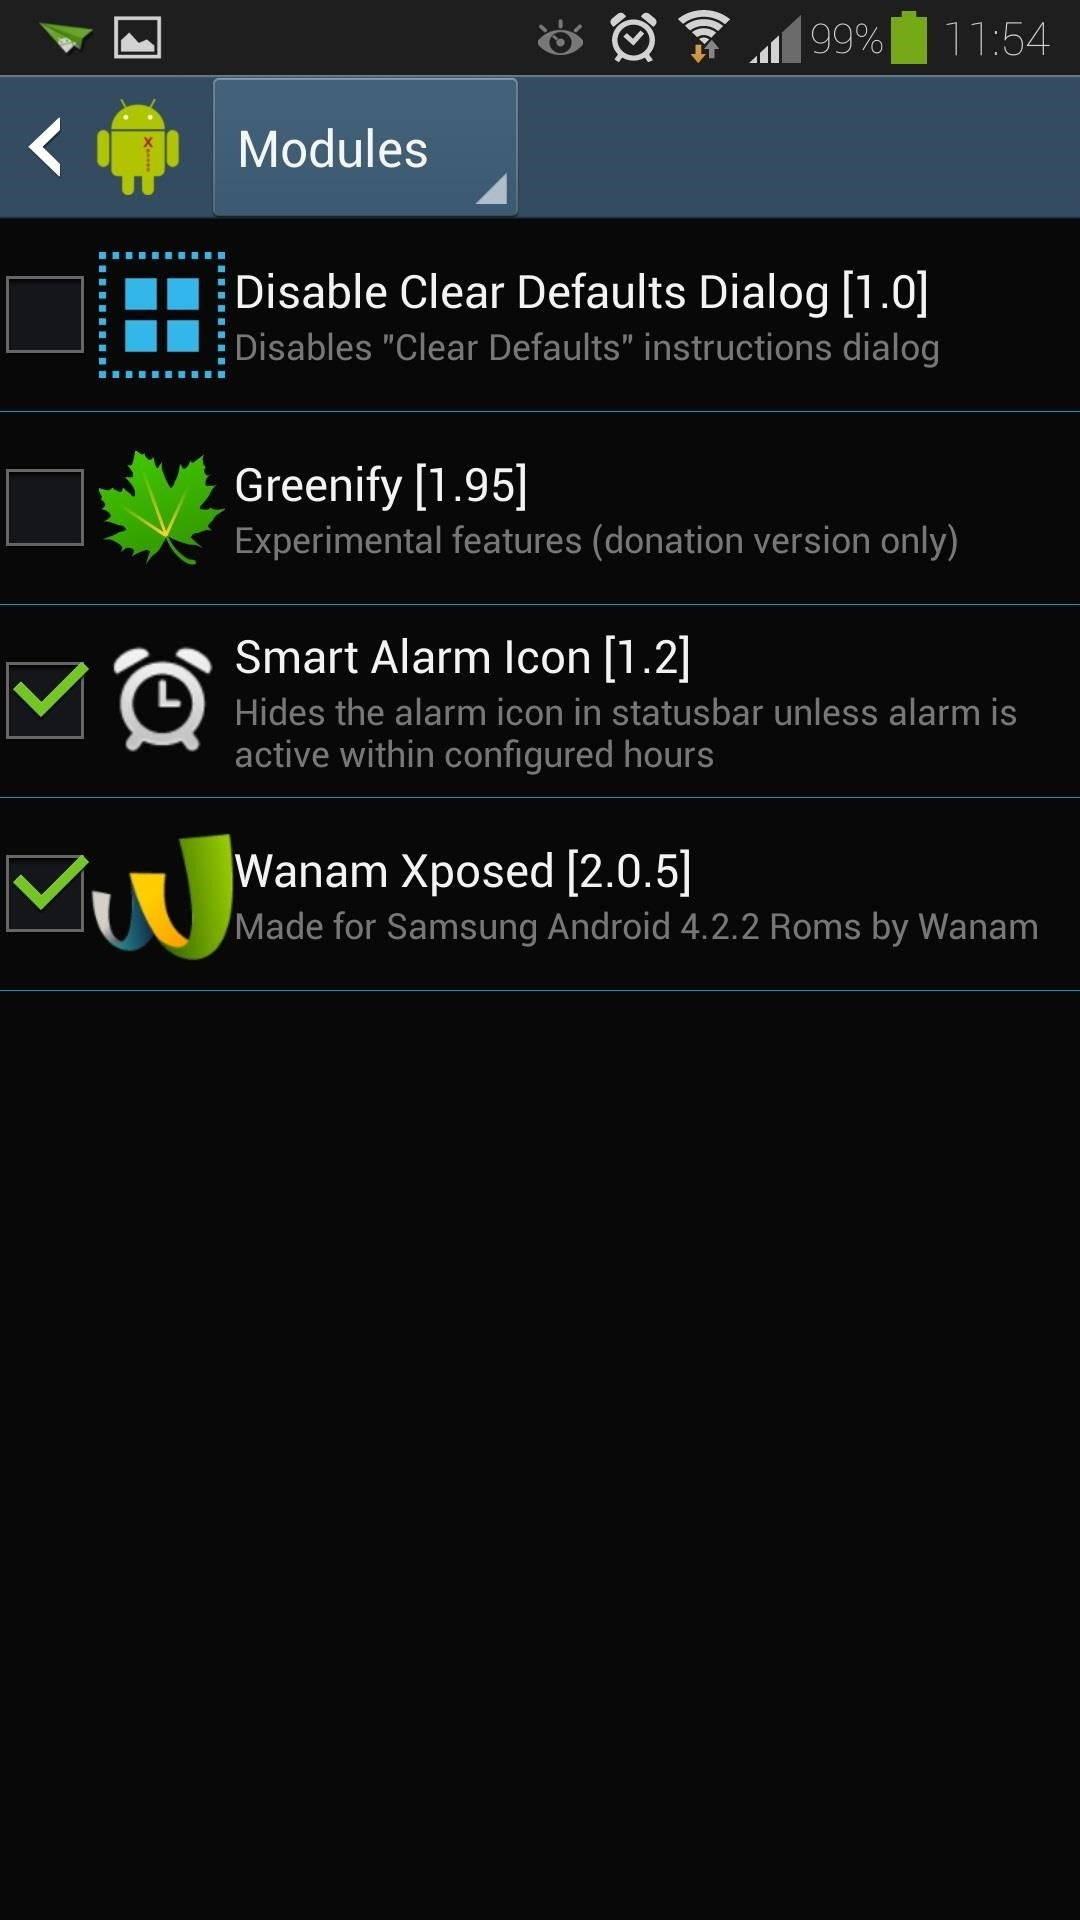 How to Control When the Alarm Icon Shows Up in the Status Bar on Your Samsung Galaxy S4